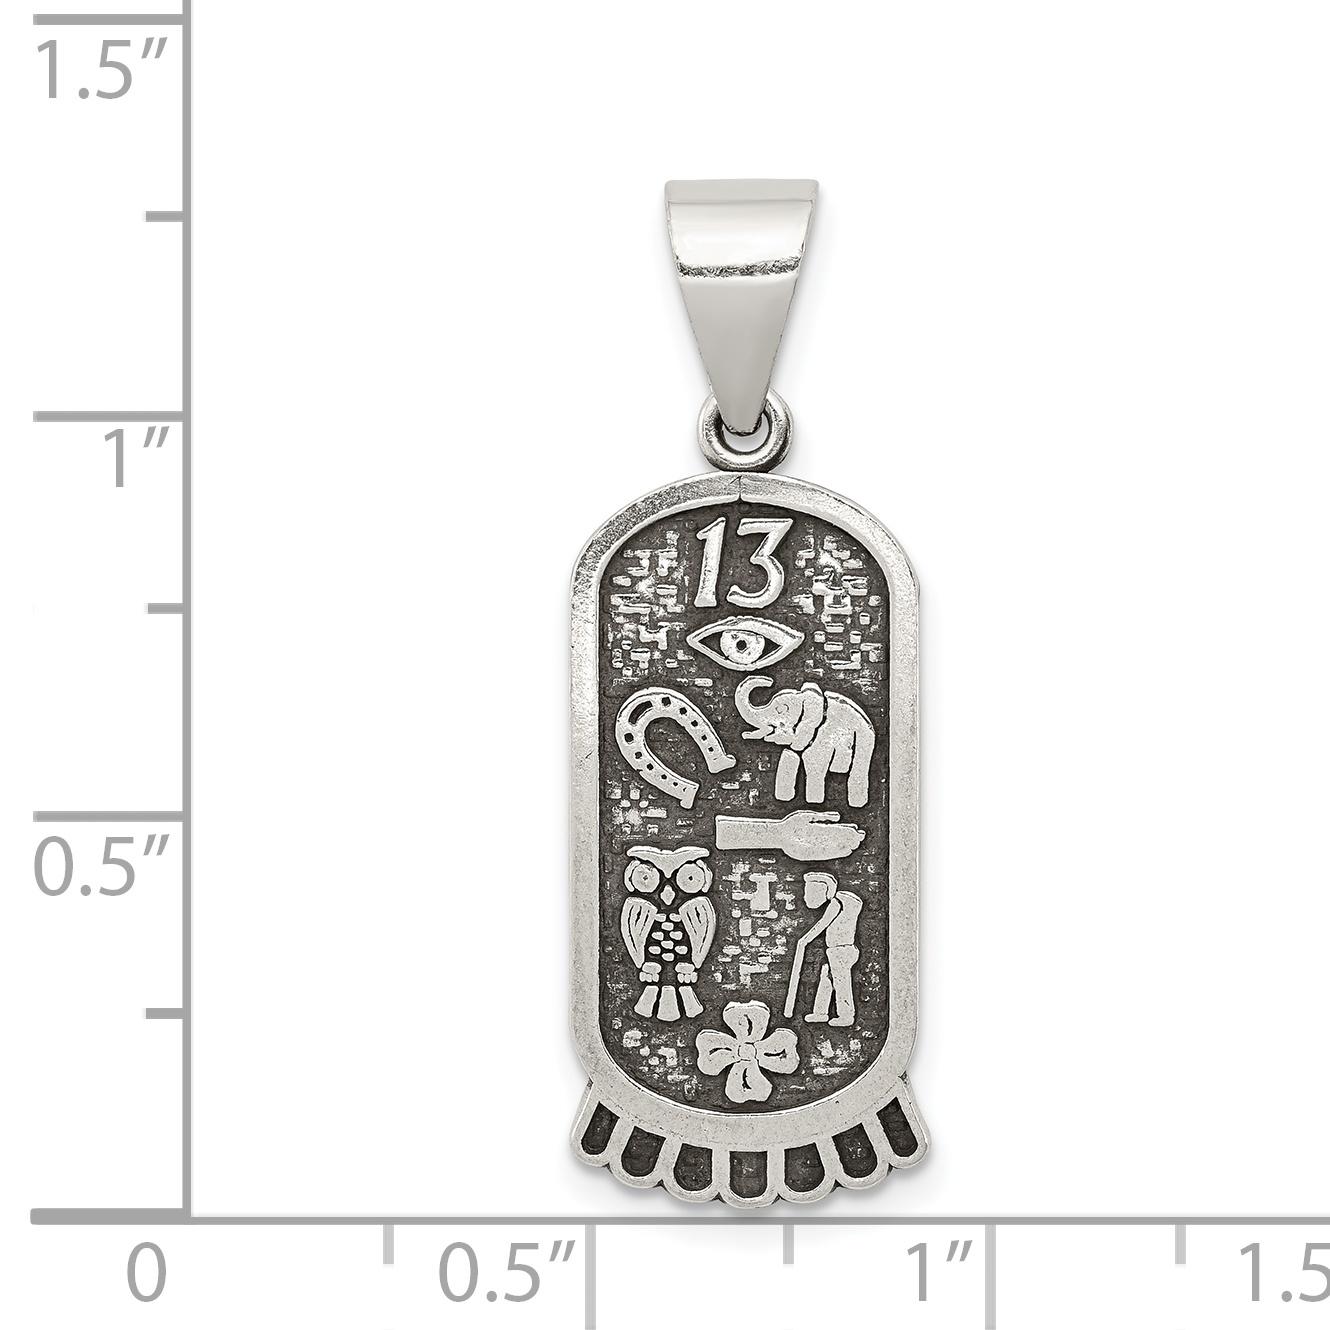 Details About 925 Sterling Silver Good Luck Icon Pendant Charm Necklace Italian Horn Man Fine